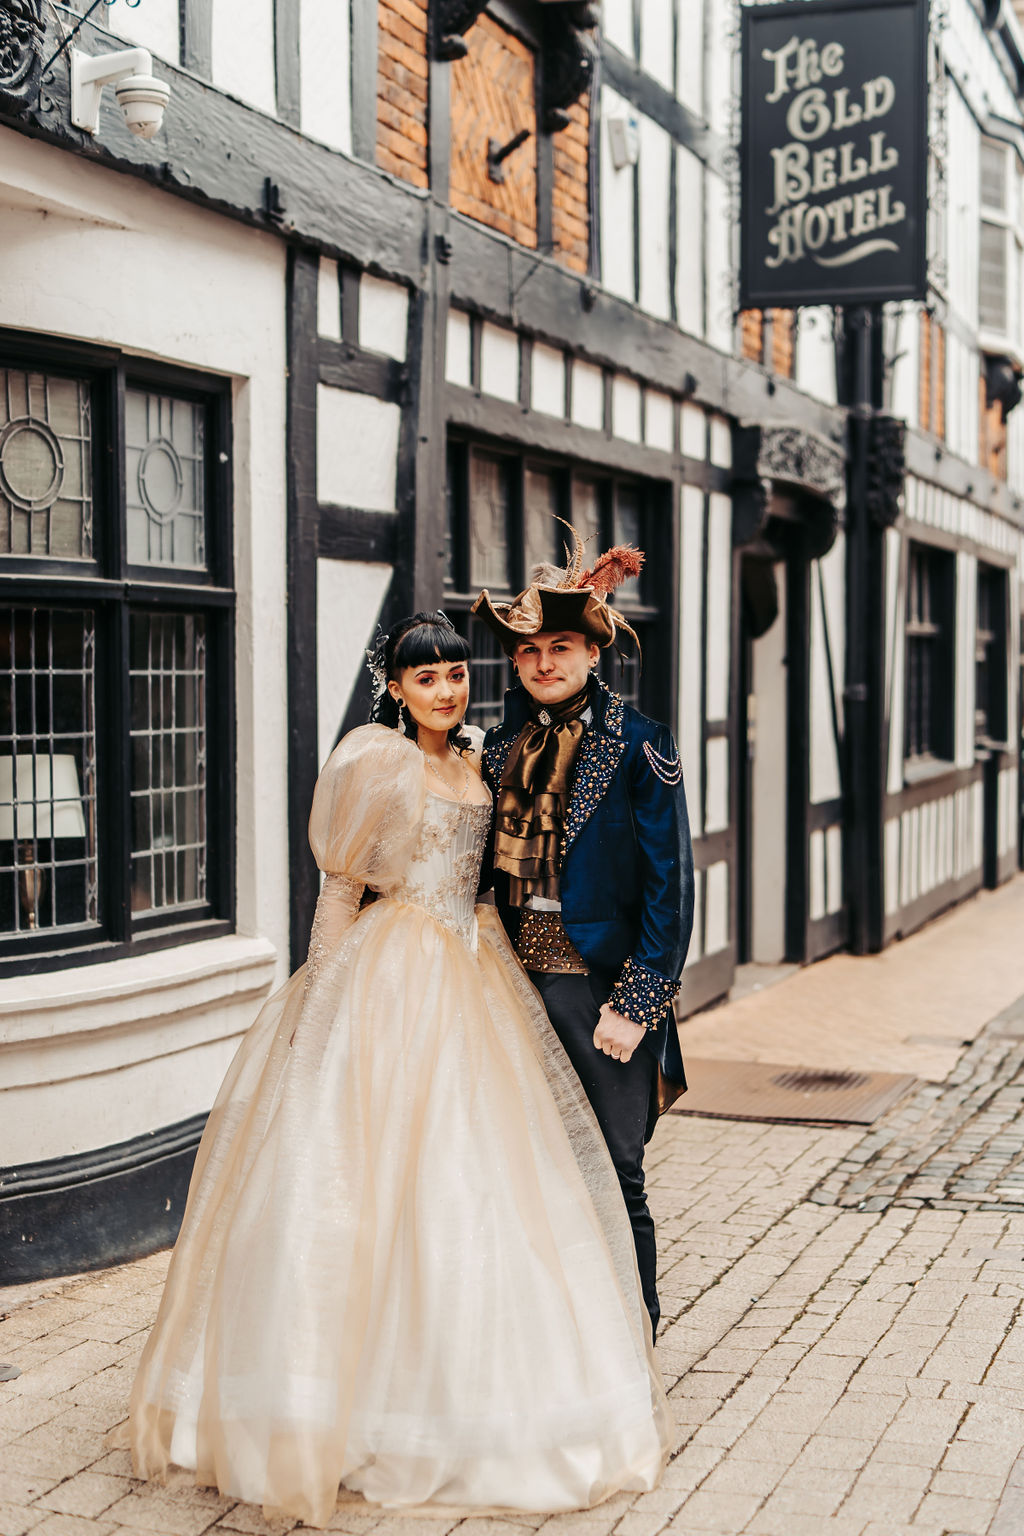 Labyrinth themed wedding day - couple standing outside the old bell hotel derby